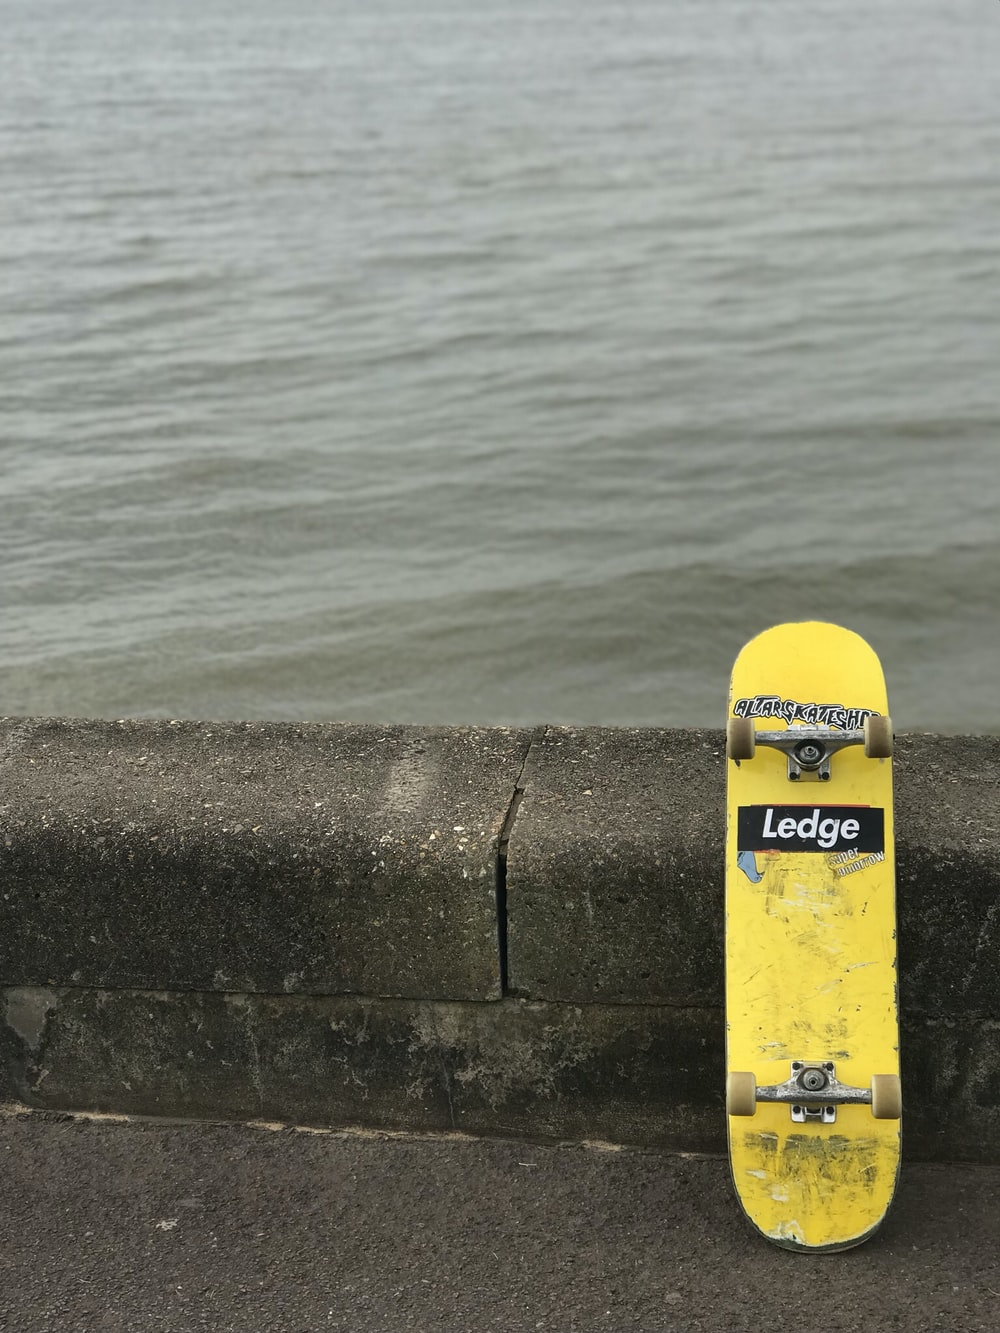 yellow Ledge skateboard near body of water